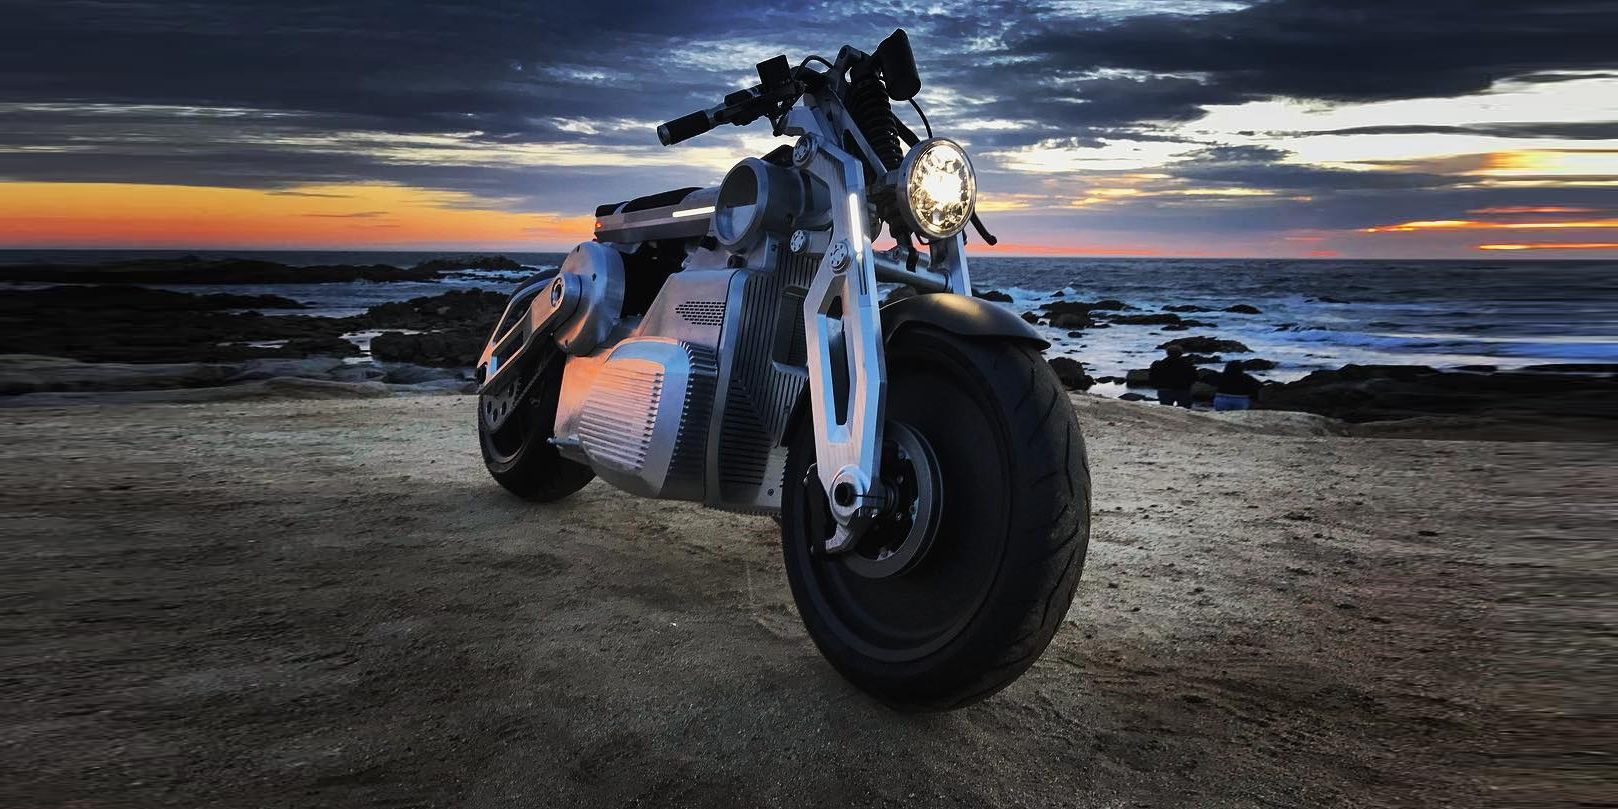 Curtiss Motorcycles unveils Zeus, a crazy powerful dual motor electric motorcycle